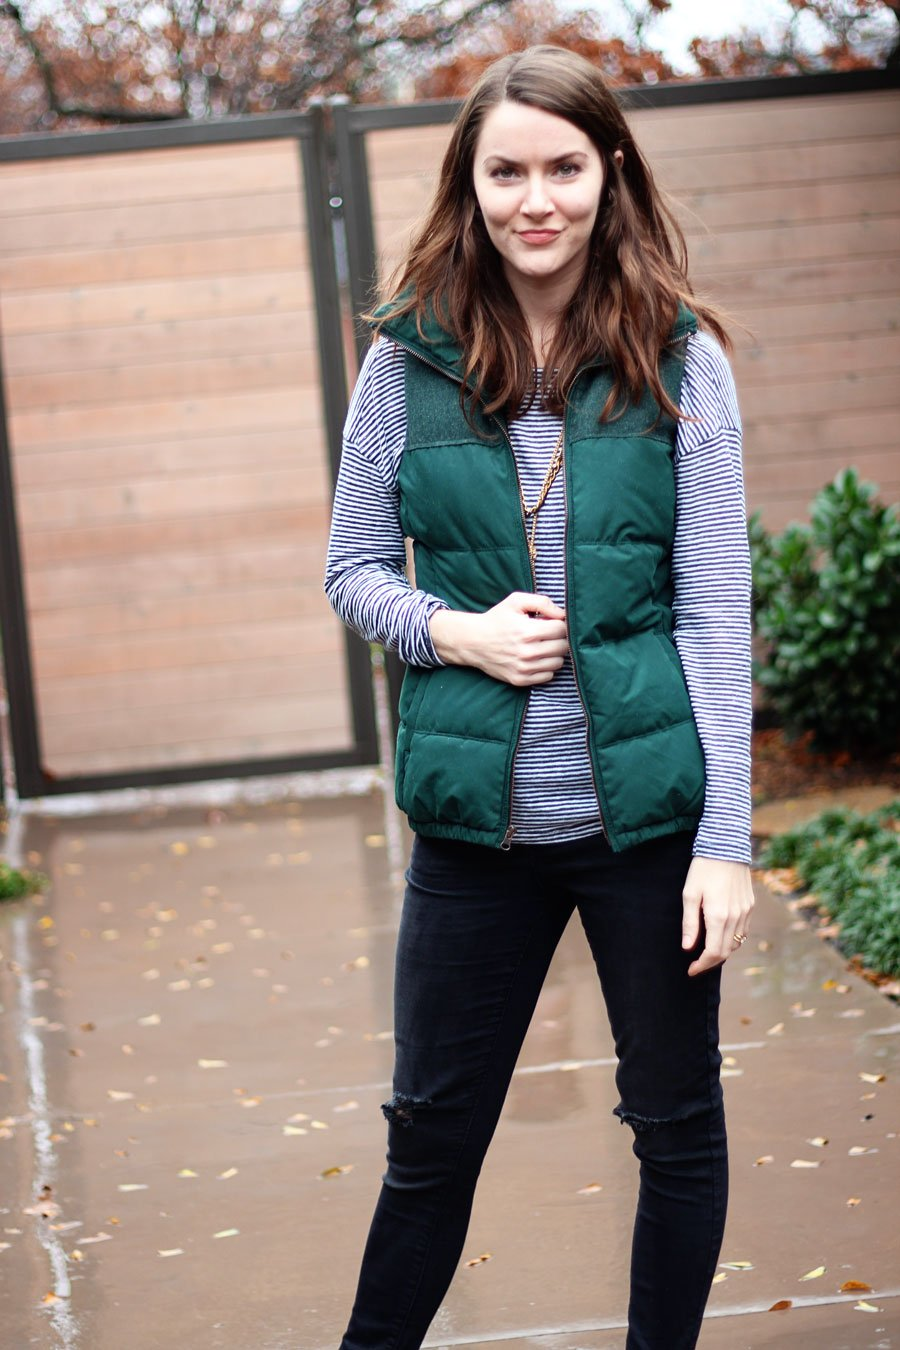 Style: Ripped Jeans & A Puffy Vest